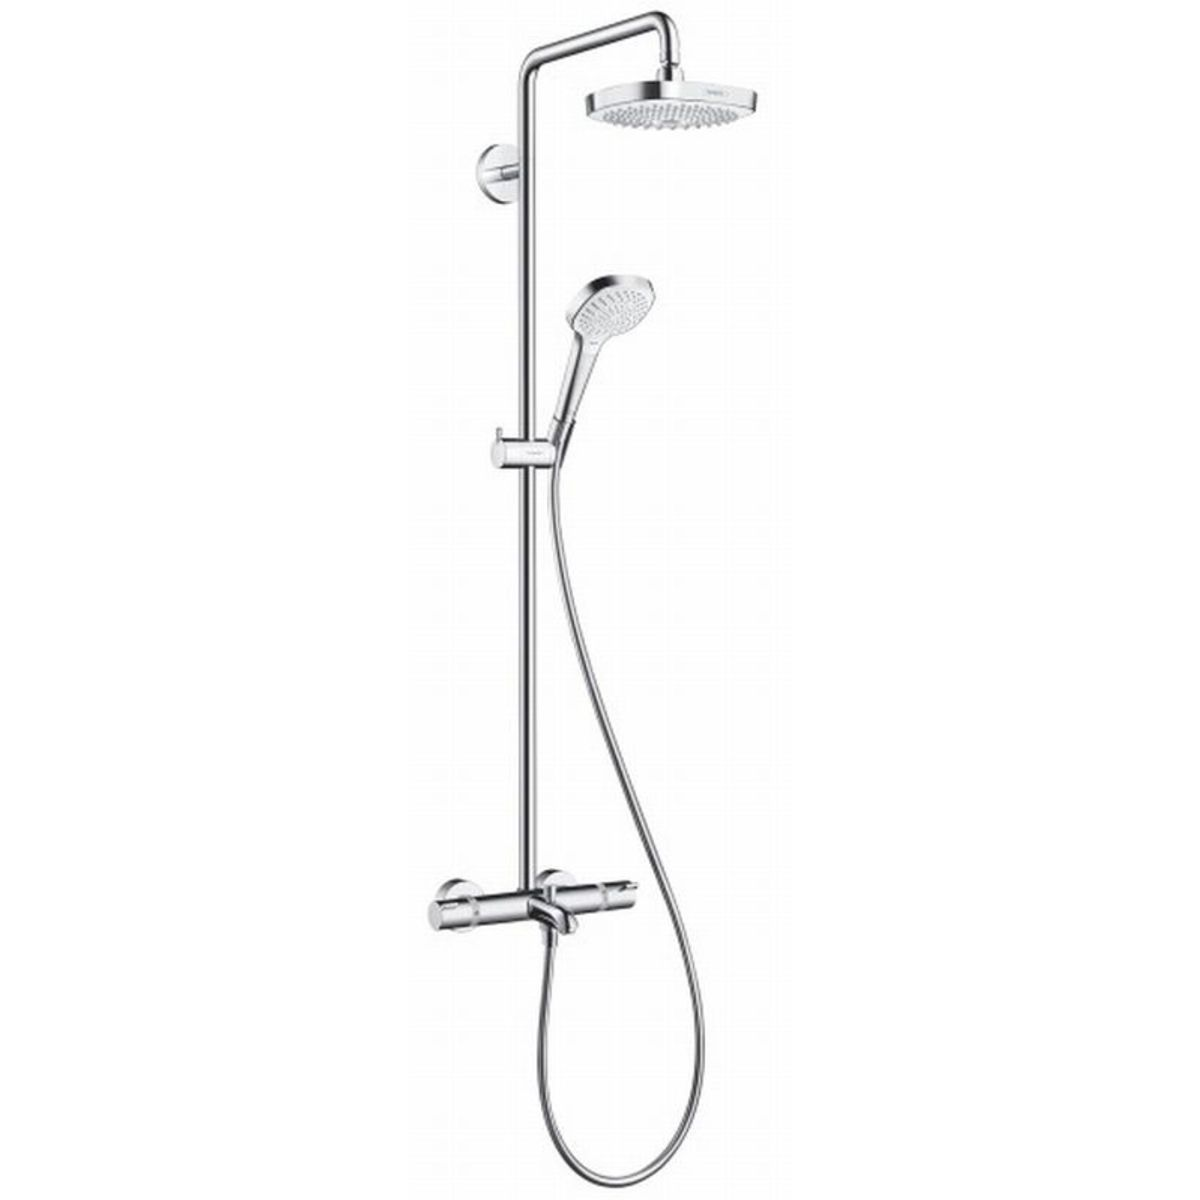 Hansgrohe Croma 2jet Hansgrohe Croma Select S 180 2jet Showerpipe Voor Bad Chroom Wit